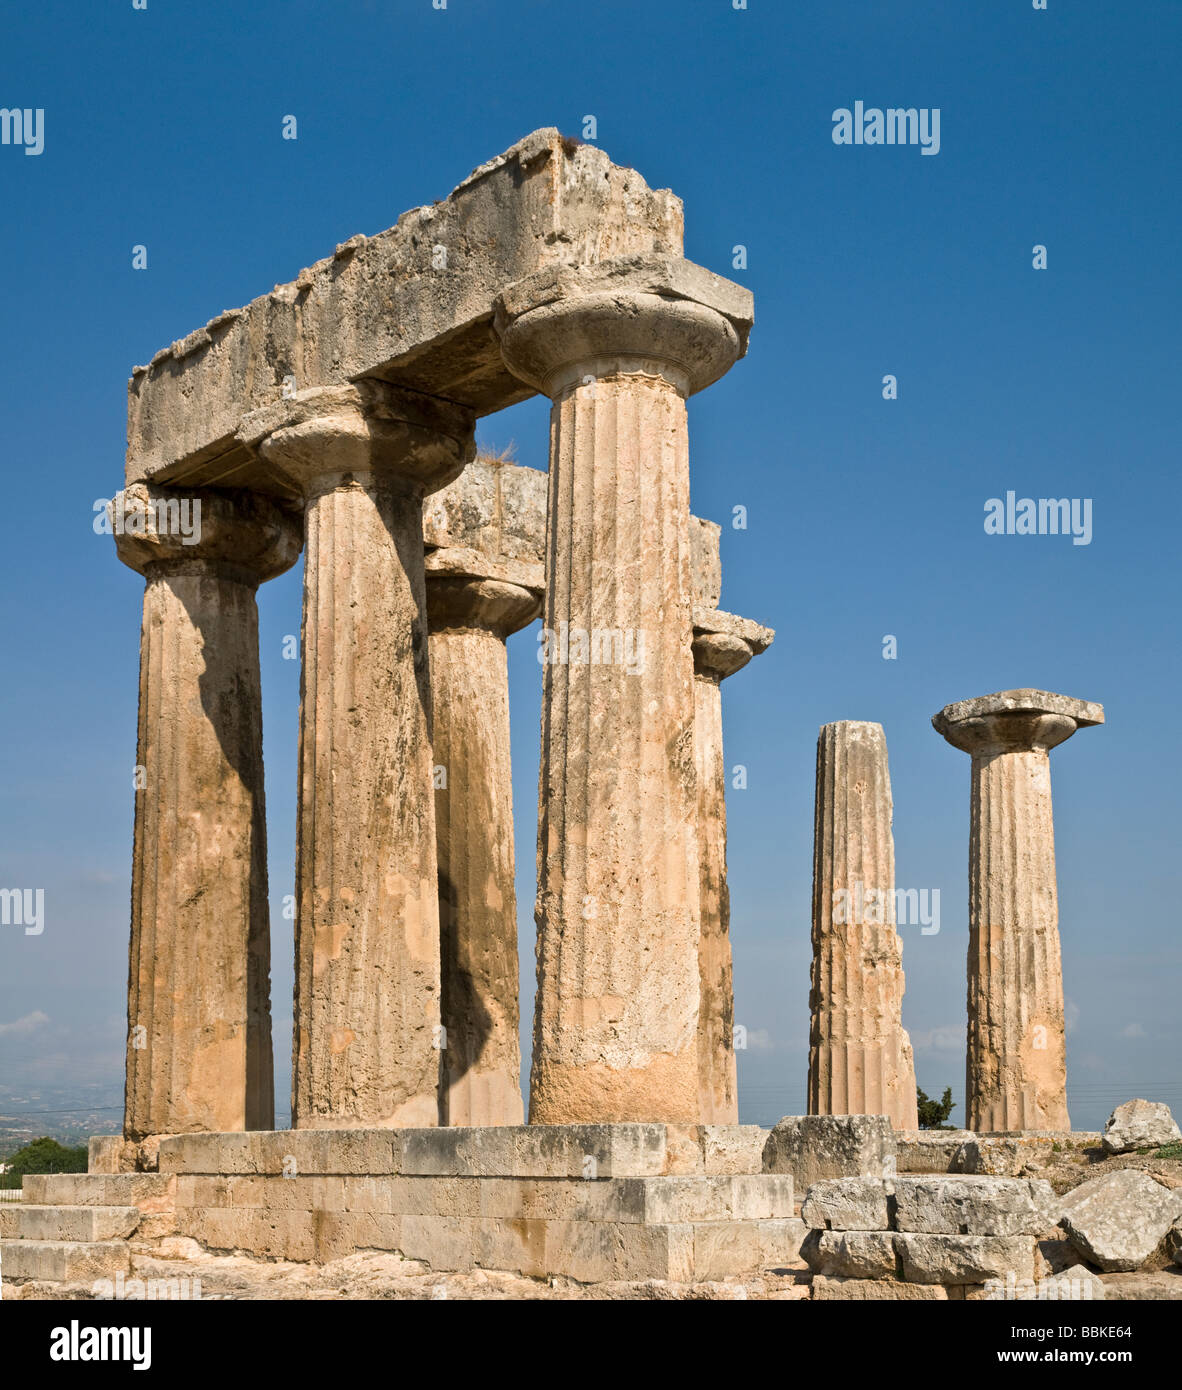 The 5th cen BC Temple of Apollo at Ancient Corinth Peloponnese Greece - Stock Image